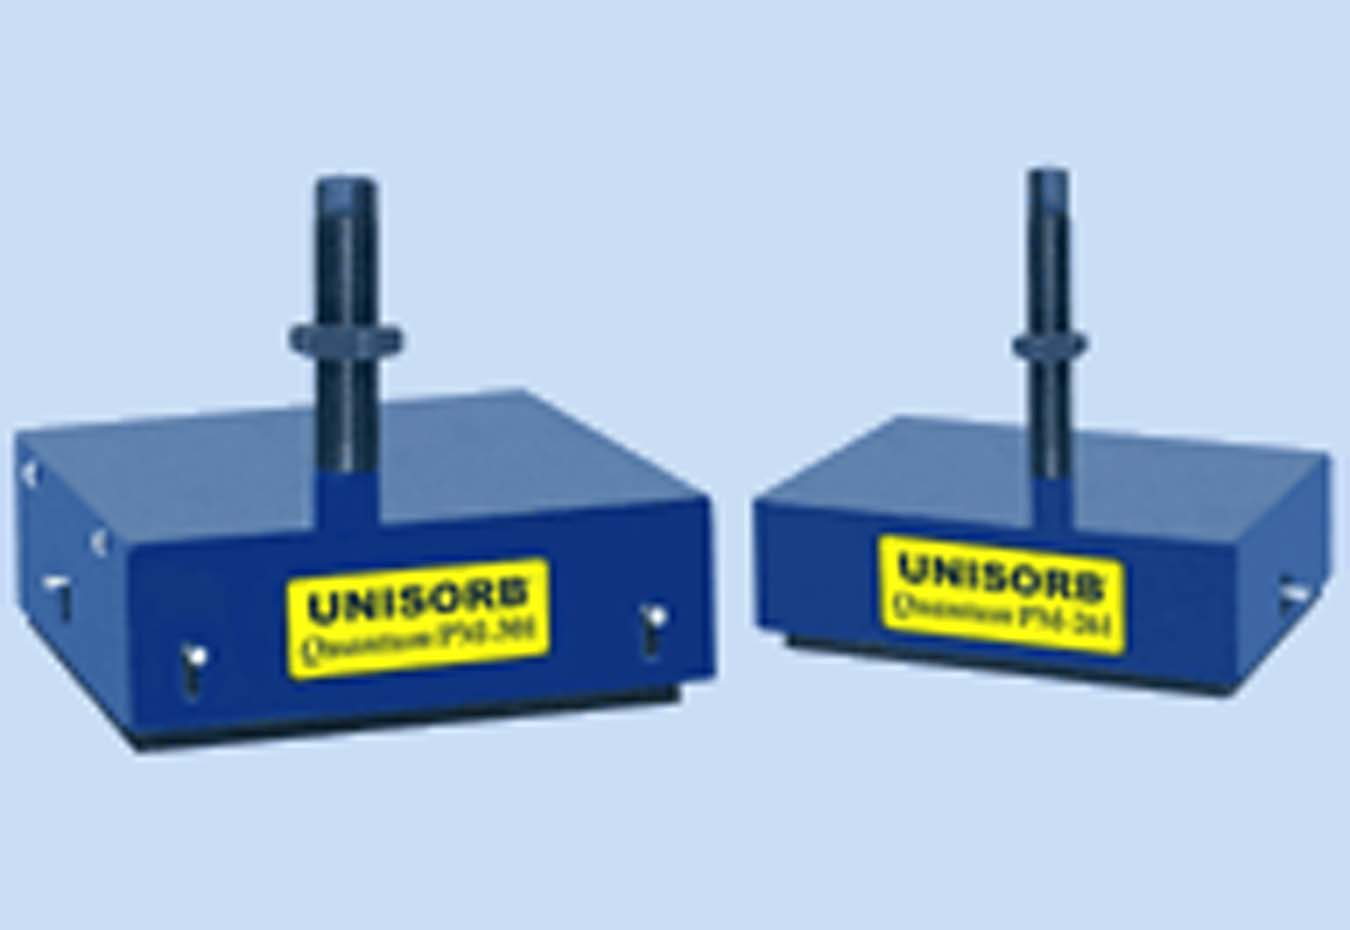 UNISORB® Quantum PM™ Press Mounts